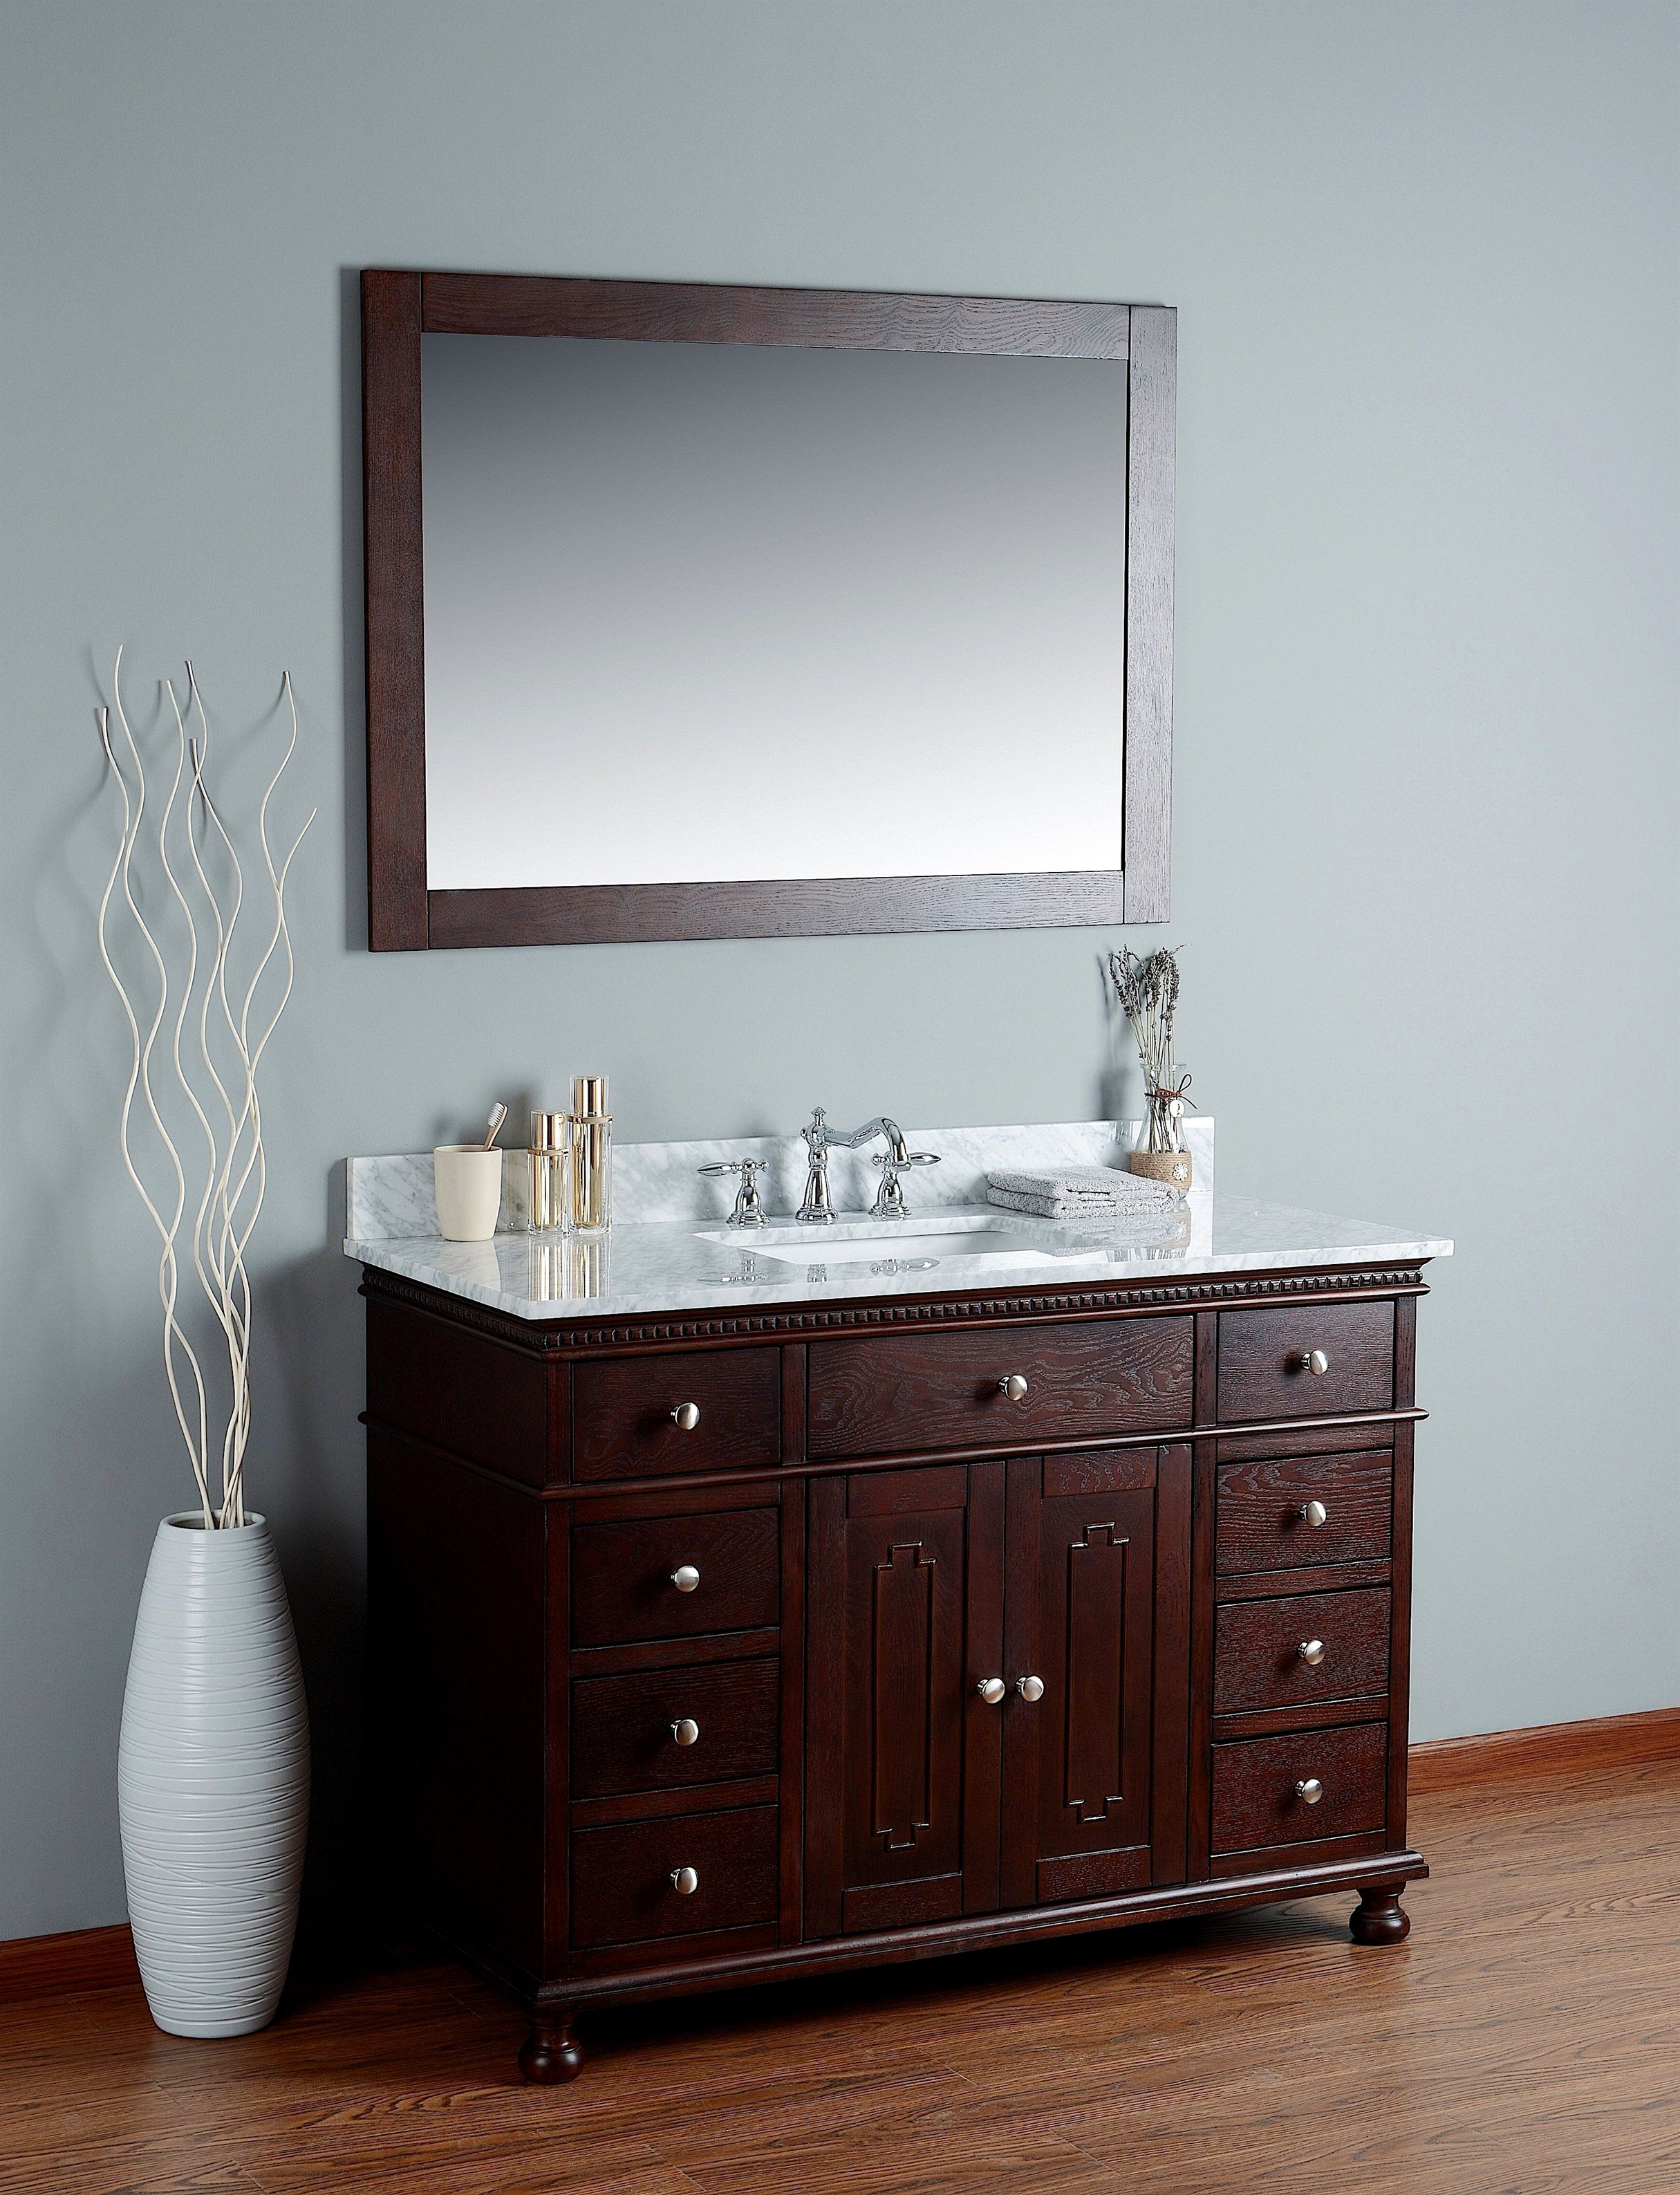 Rubeza 48 Didim Bathroom Vanity Combo Set White Italian Marble Carrara Top Whitebathroomvanity